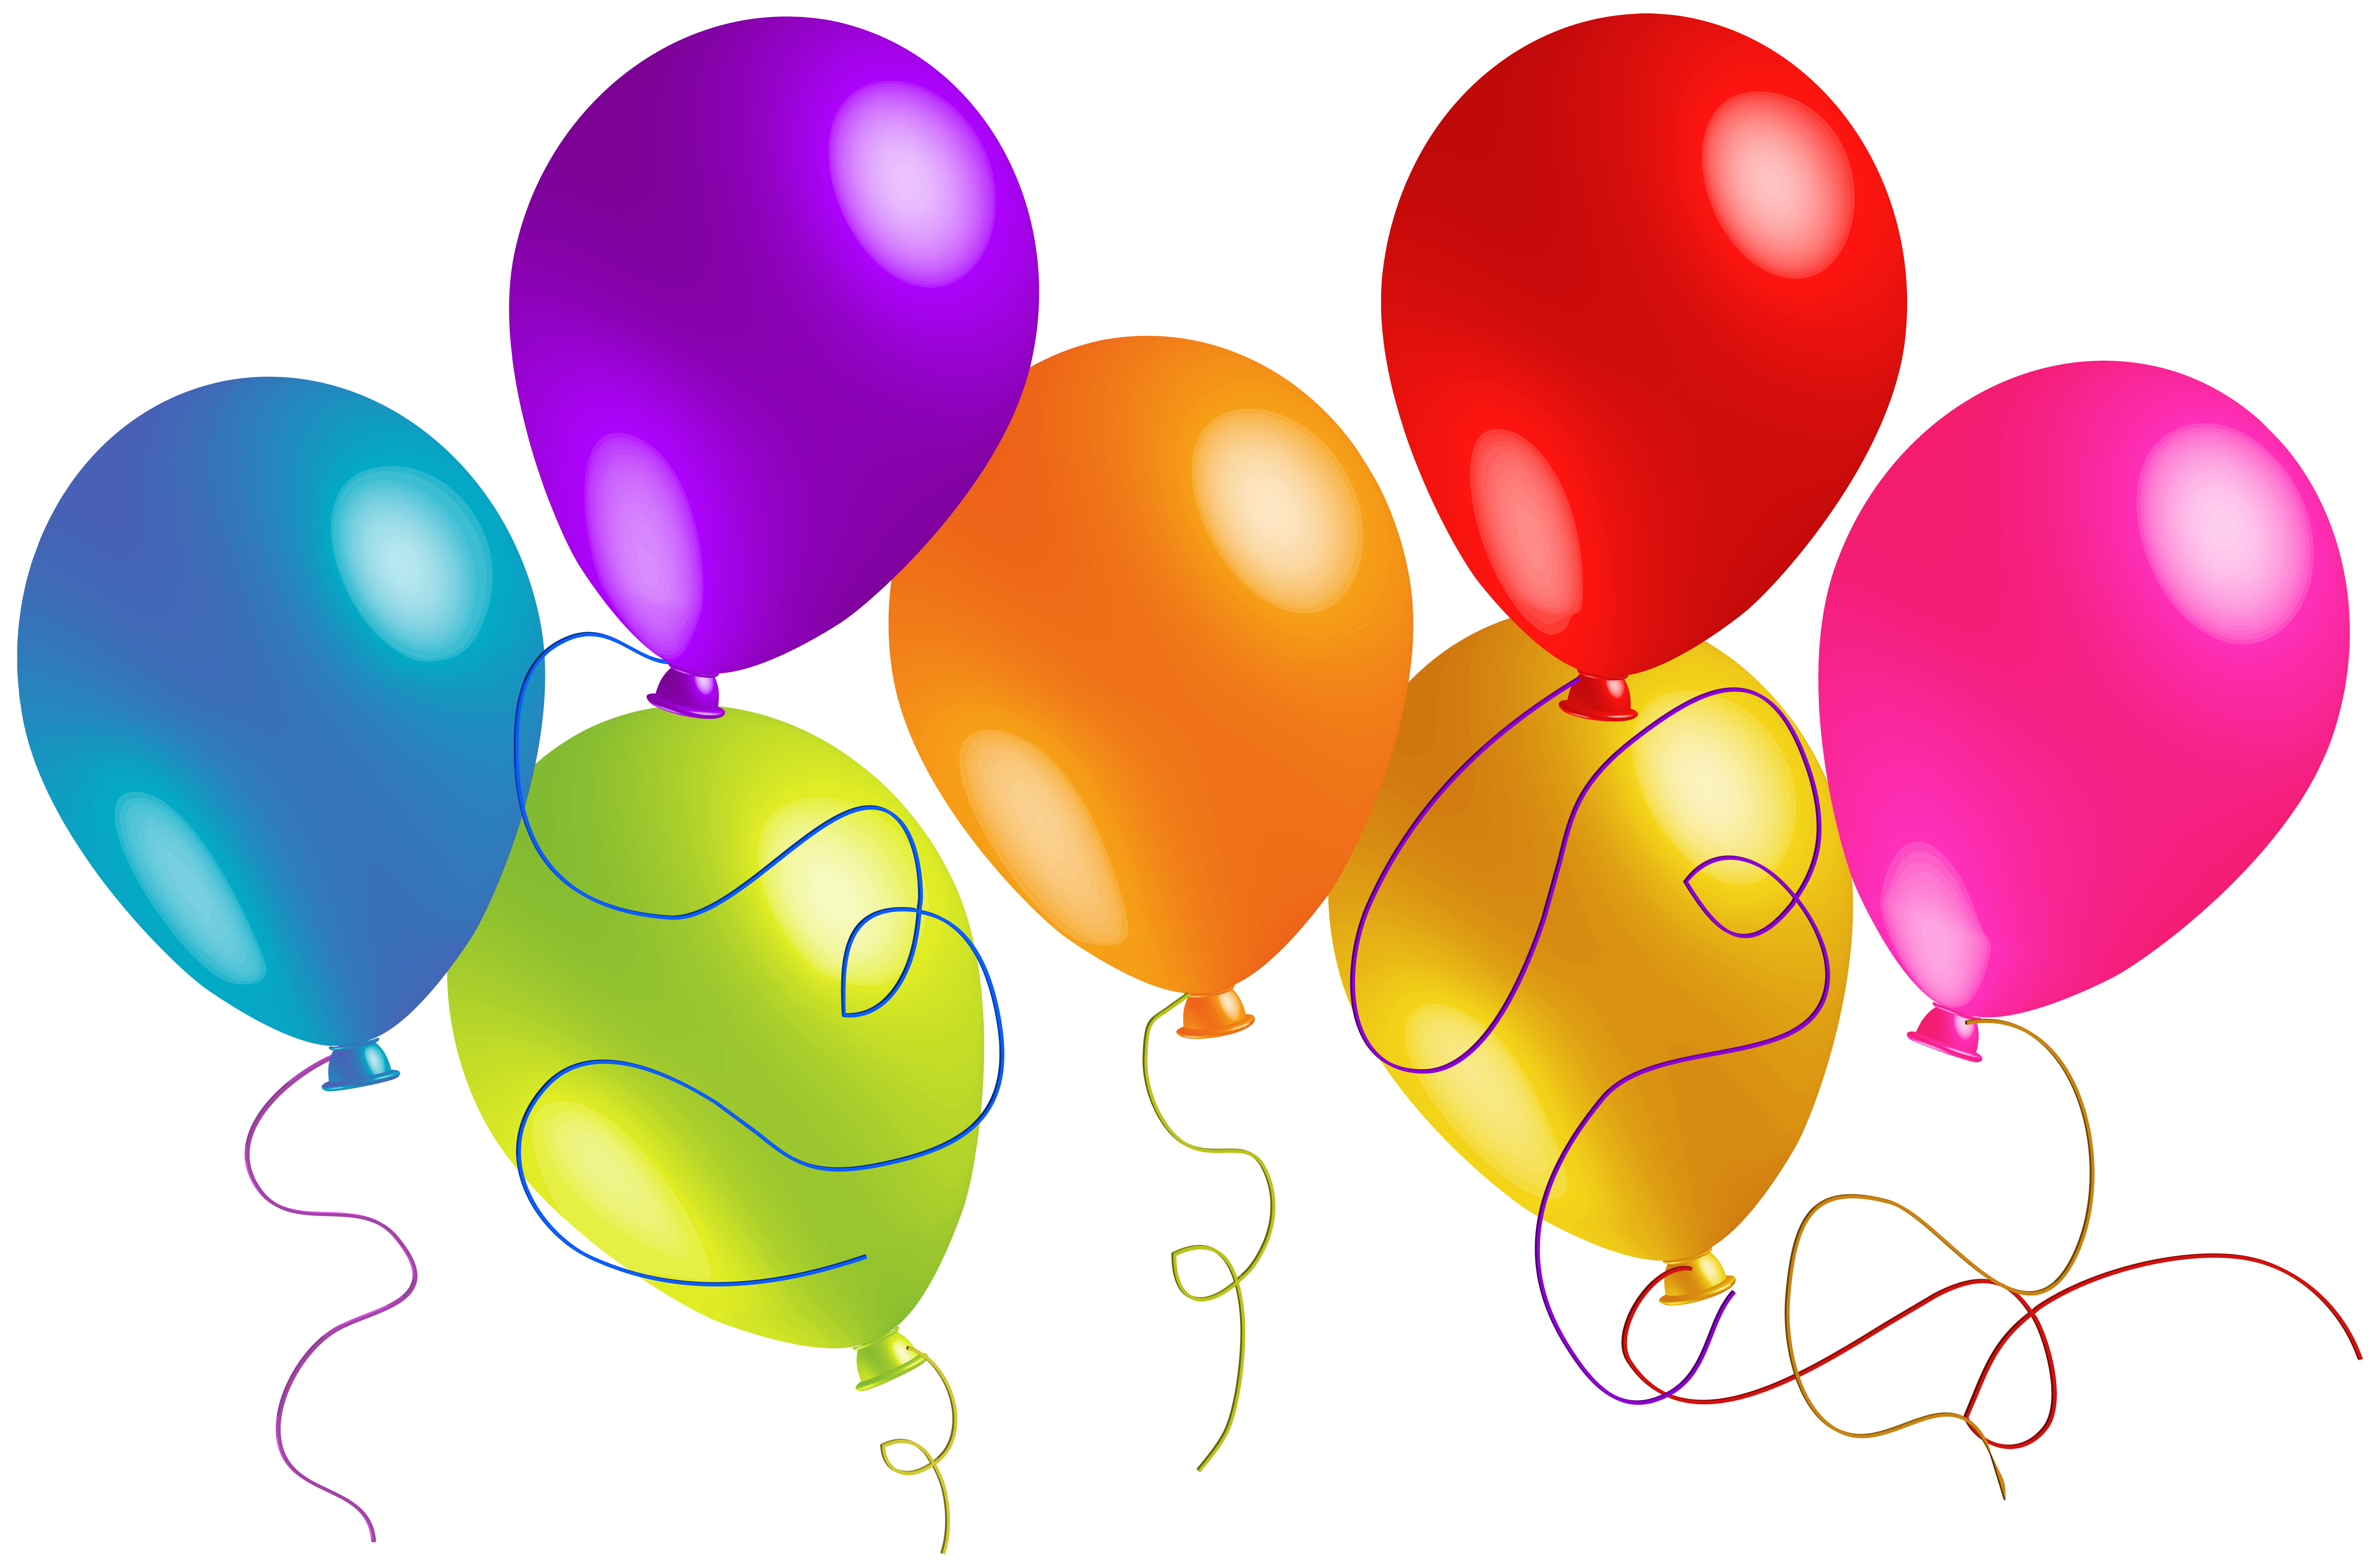 8000x5286 Large Transparent Colorful Balloons Clipartu200b Gallery